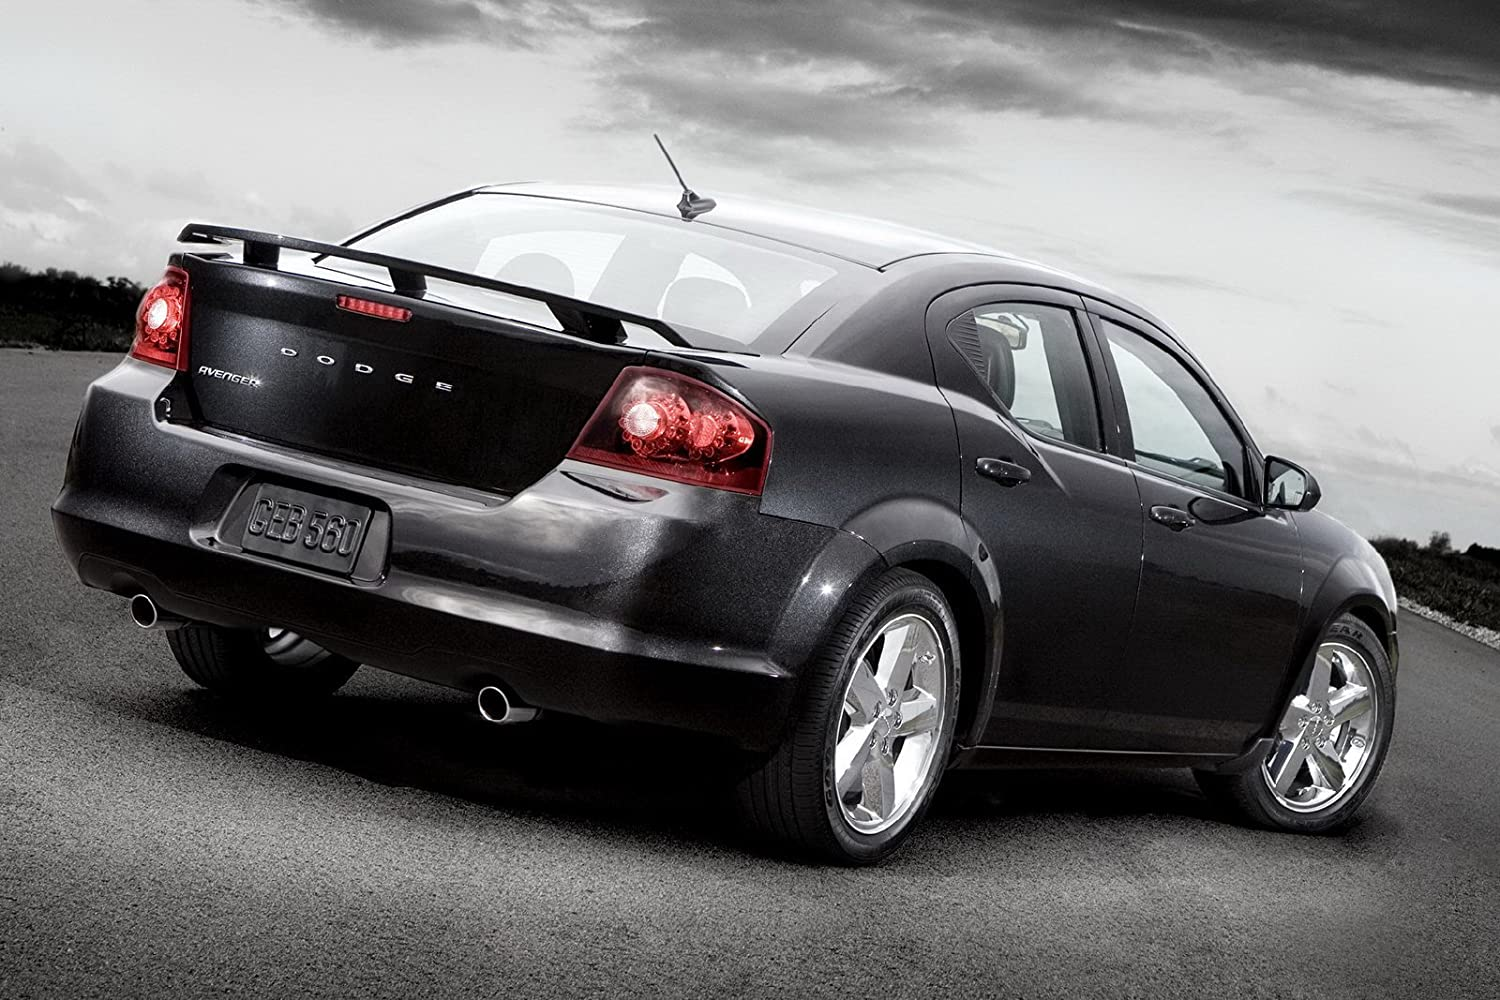 California Dream Compatible With Black PX8 2008-13 Dodge Avenger Factory Style Spoiler in the Paint Code of Your Choice